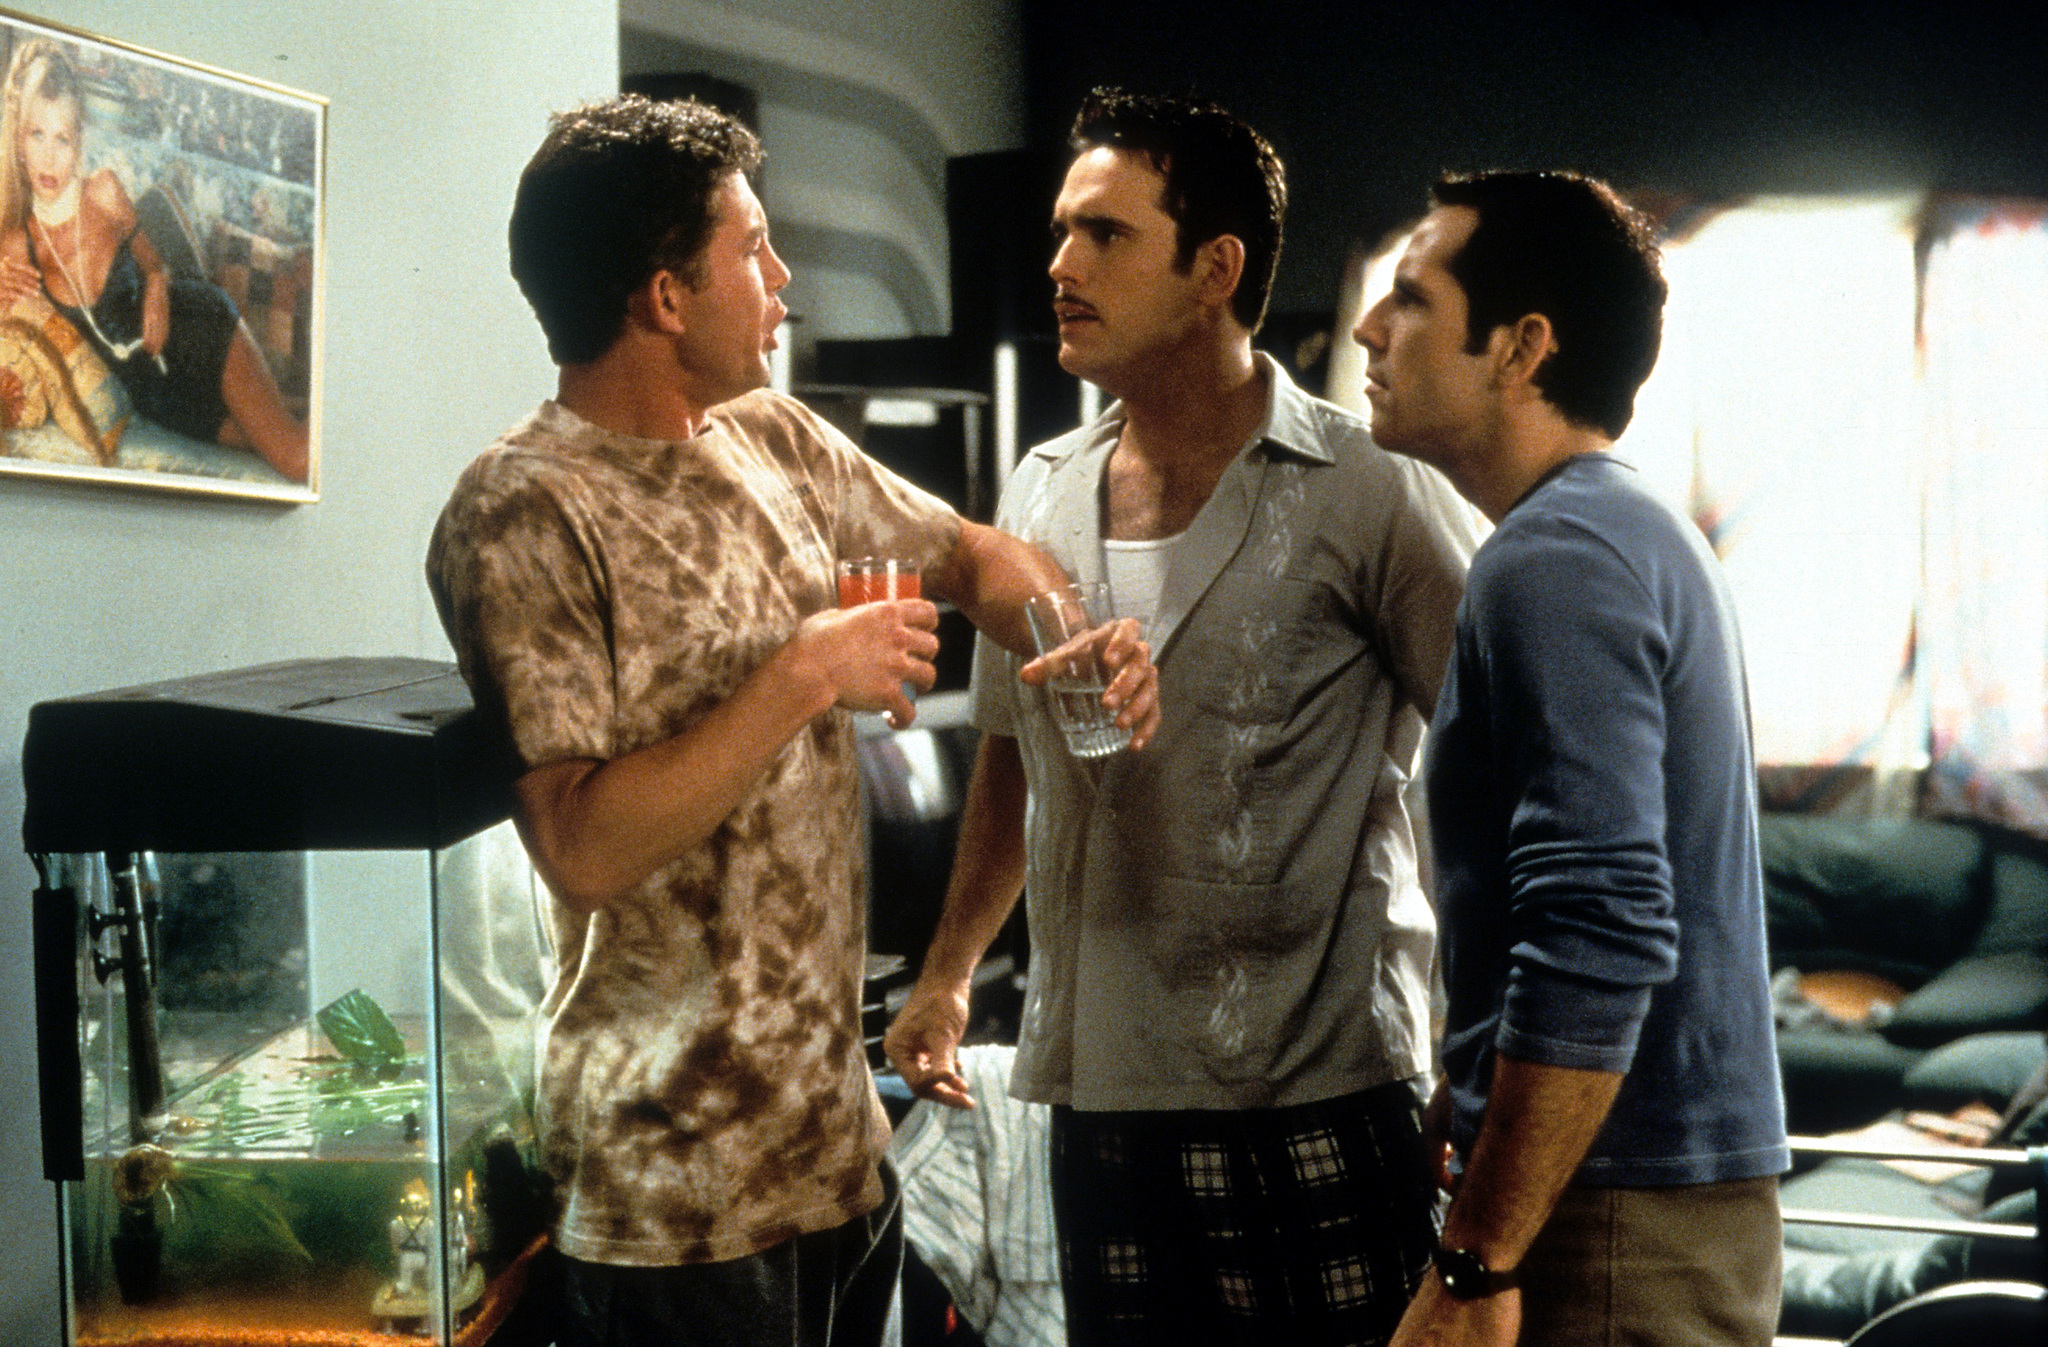 Matt Dillon, Ben Stiller, and Lee Evans in There's Something About Mary (1998)